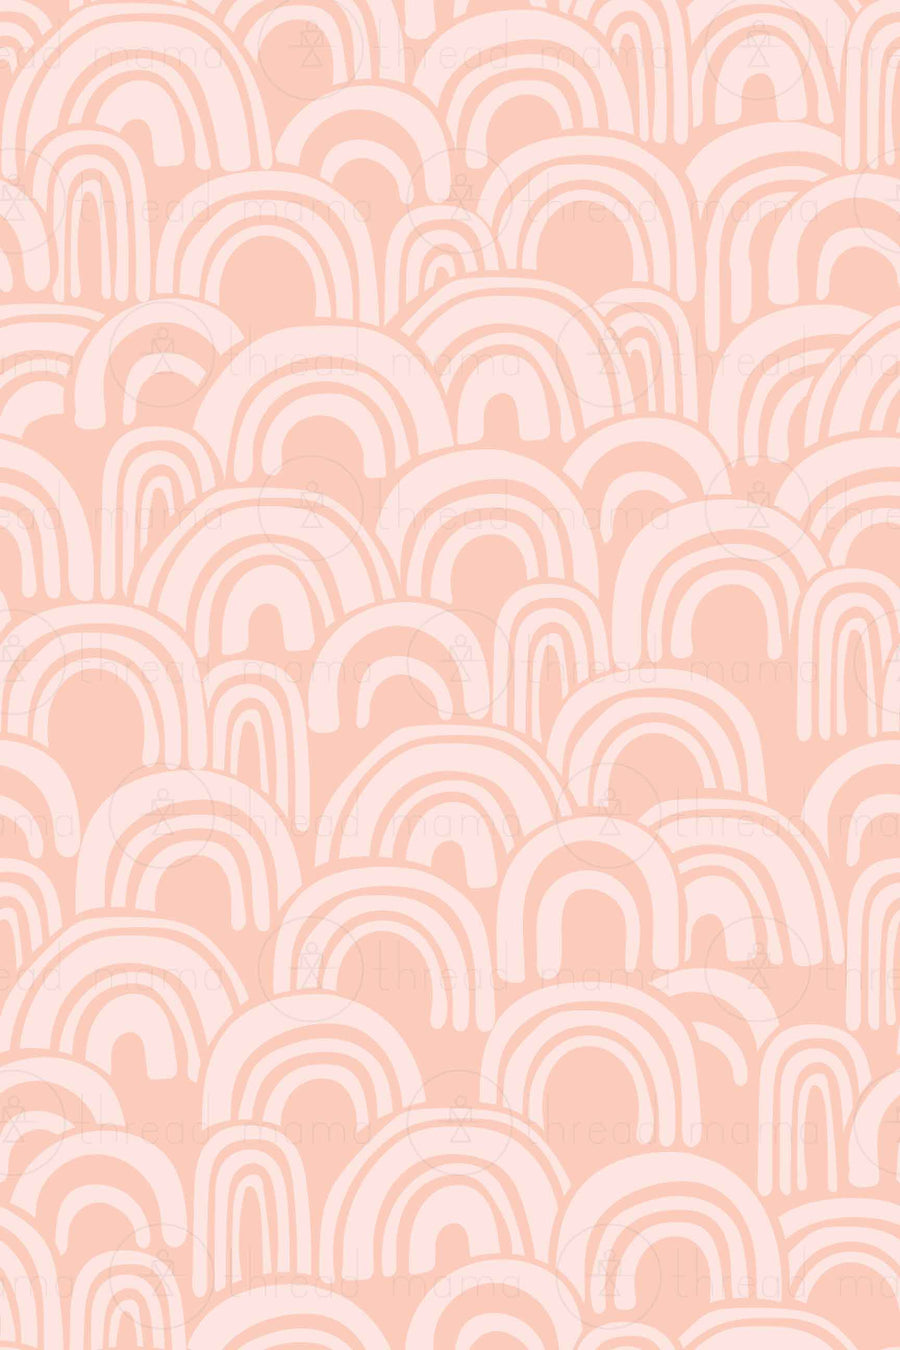 Repeating Pattern 48C (Seamless)